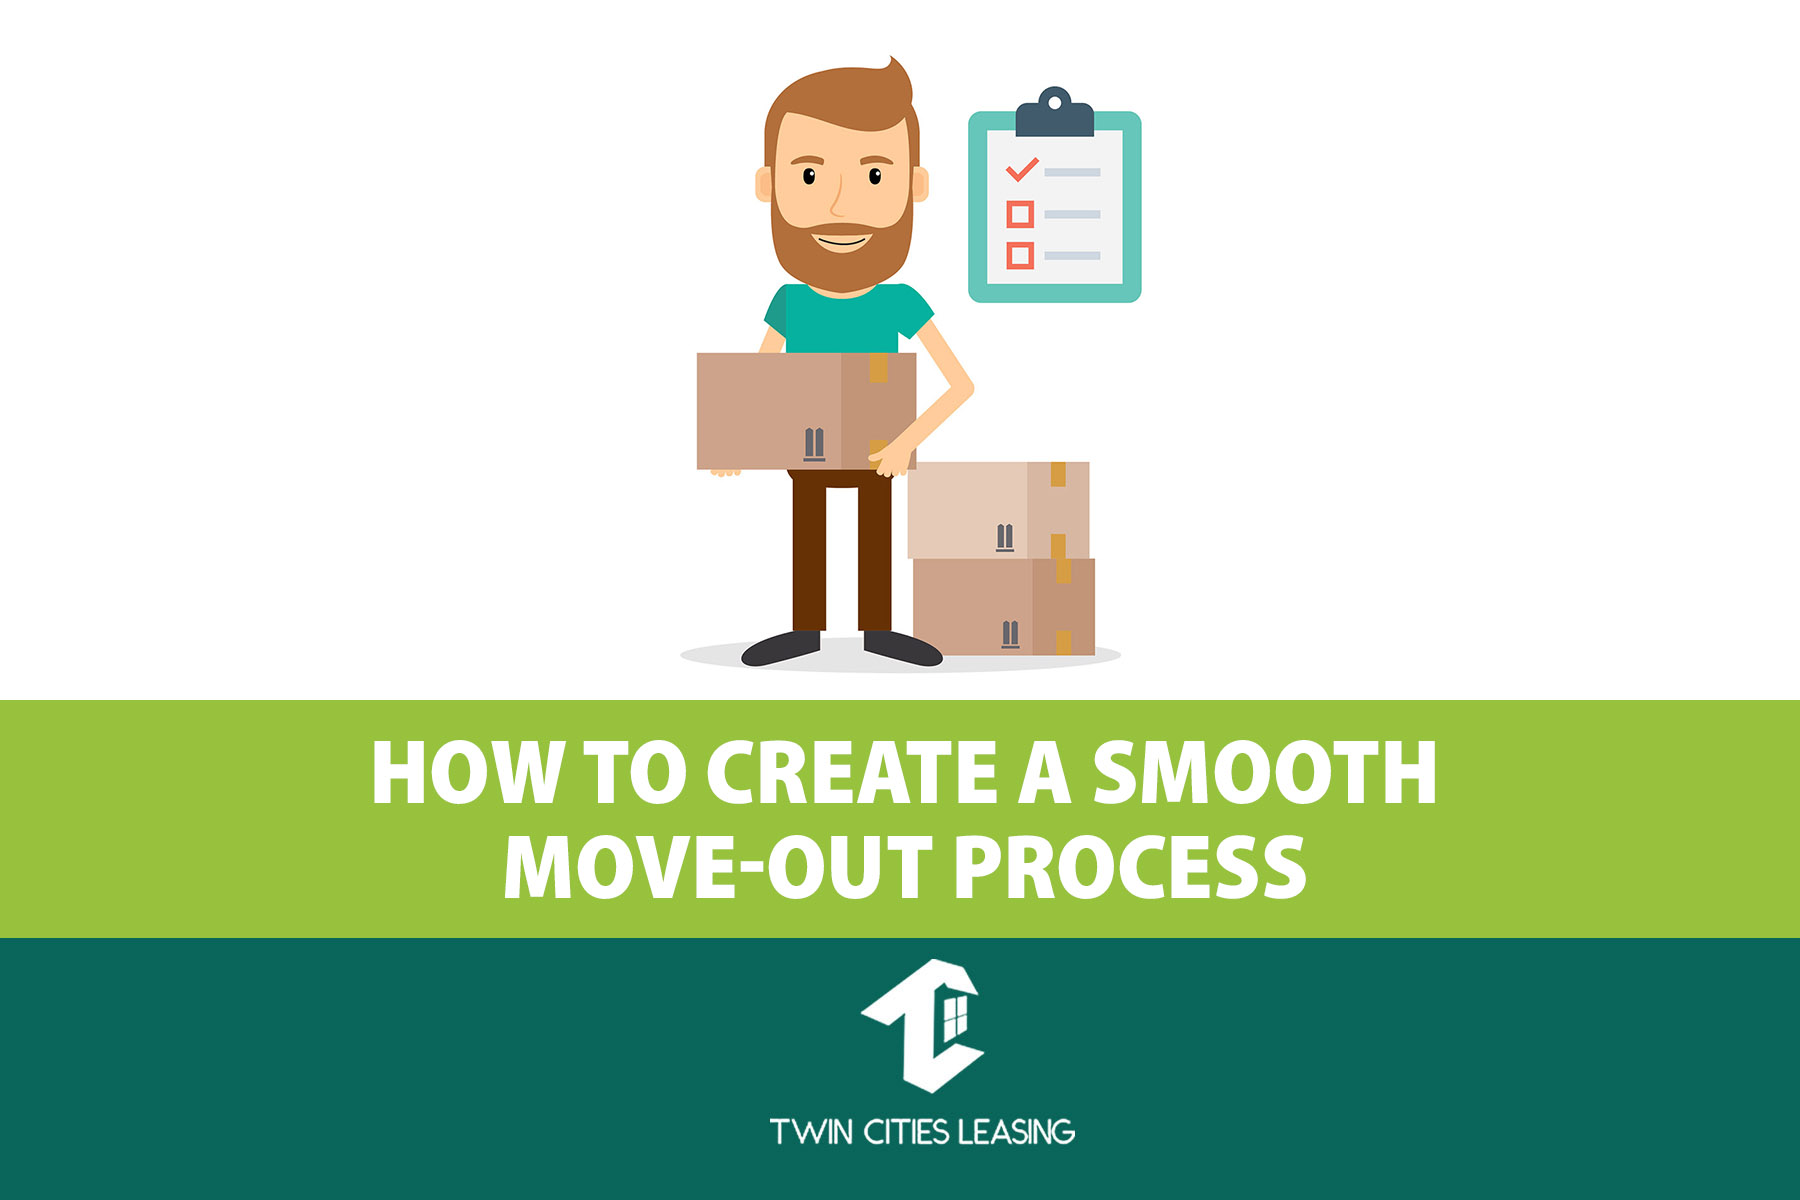 How to Create a Smooth Move-Out Process